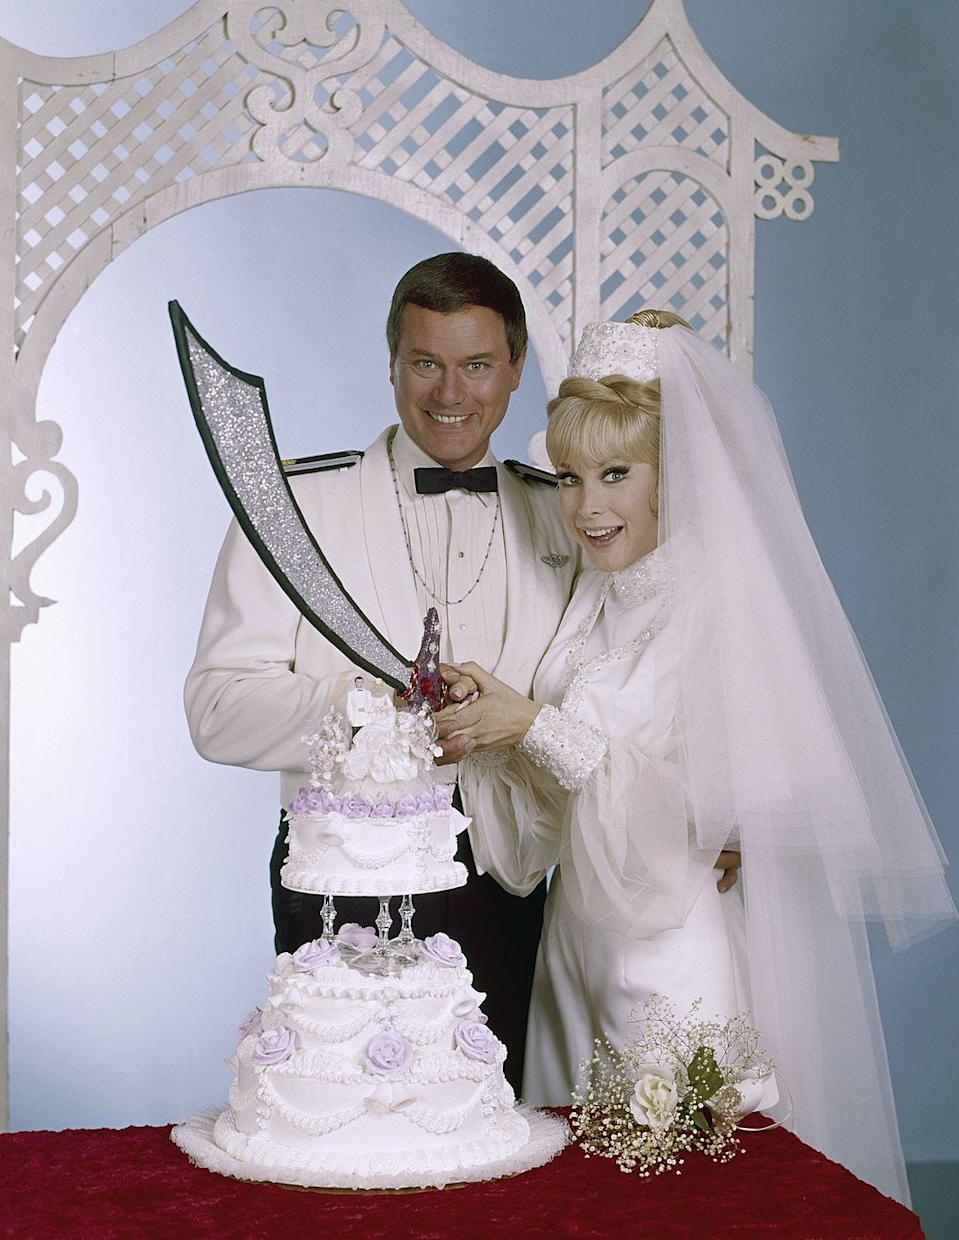 <p>Jeannie didn't wear her classic pink crop top and harem pants when she wed <del>Master</del> Major Nelson in <em>I Dream of Jeannie. </em>Instead, she opted for a white suit dress with tulle sleeves and, of course, her signature ponytail. </p>